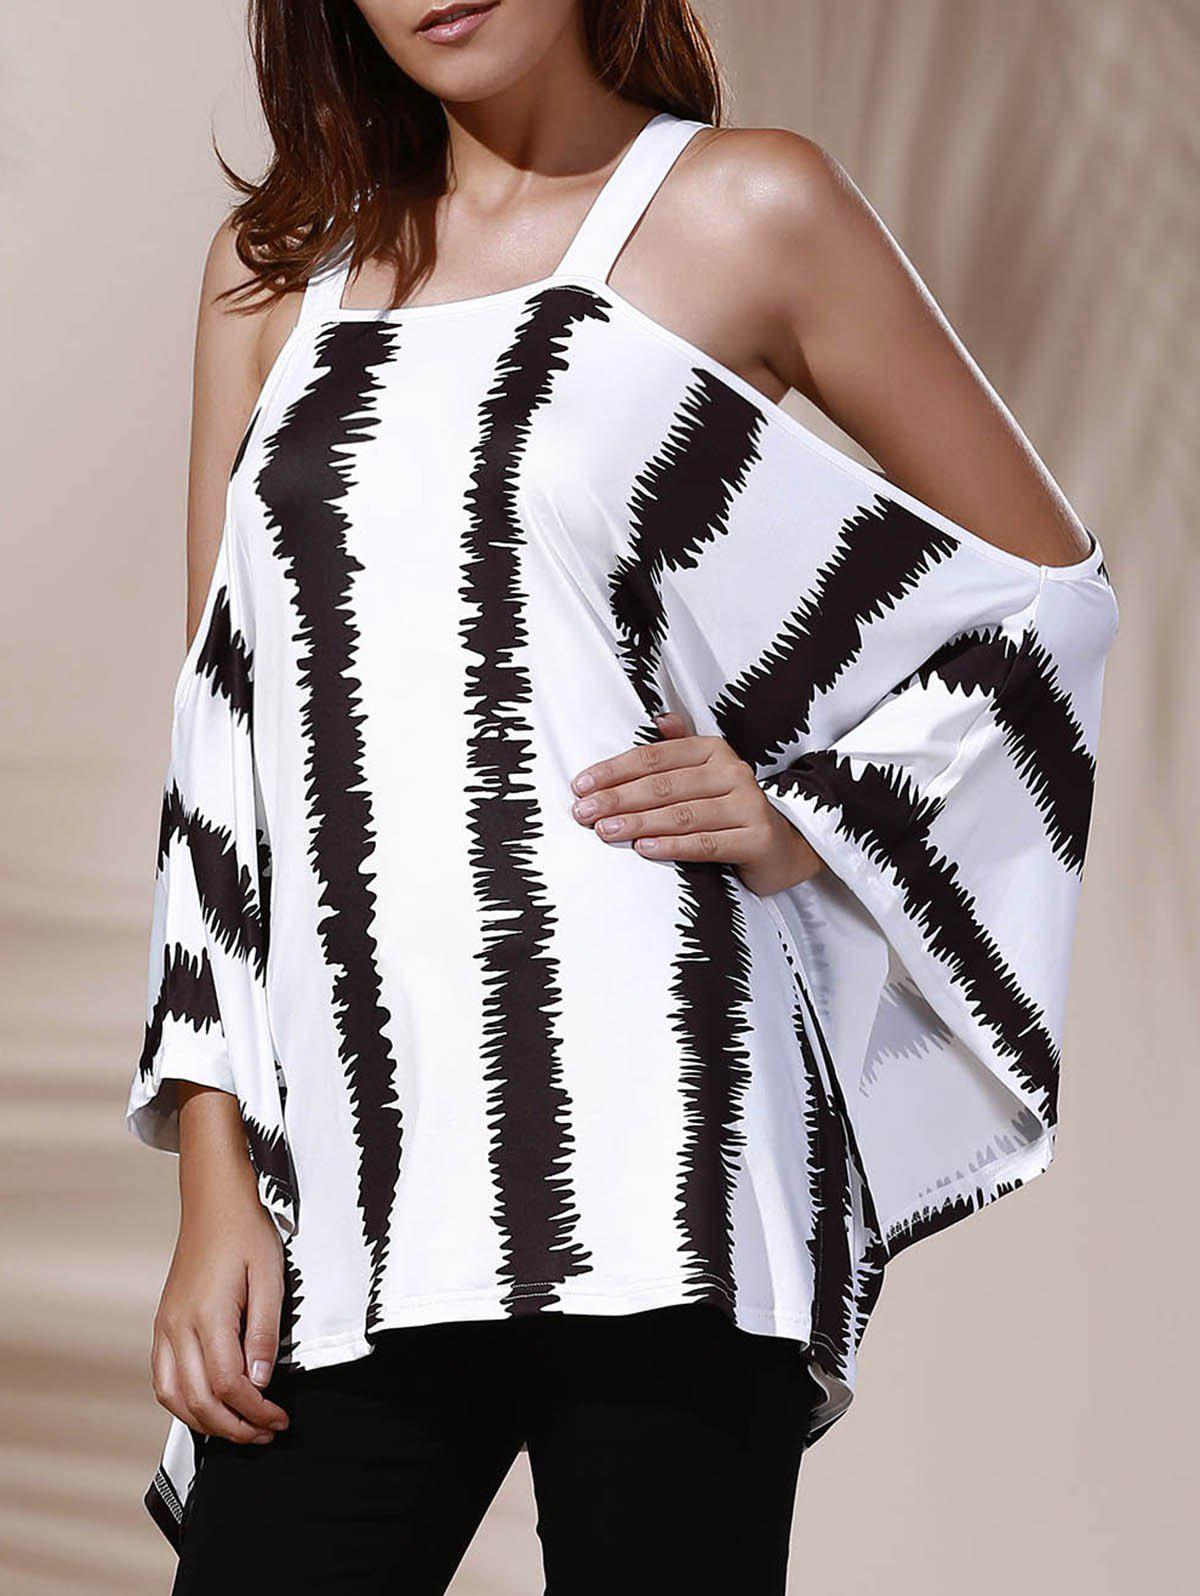 Trendy Loose-Fitting Cut Out Striped Women's T-Shirt - WHITE/BLACK ONE SIZE(FIT SIZE XS TO M)